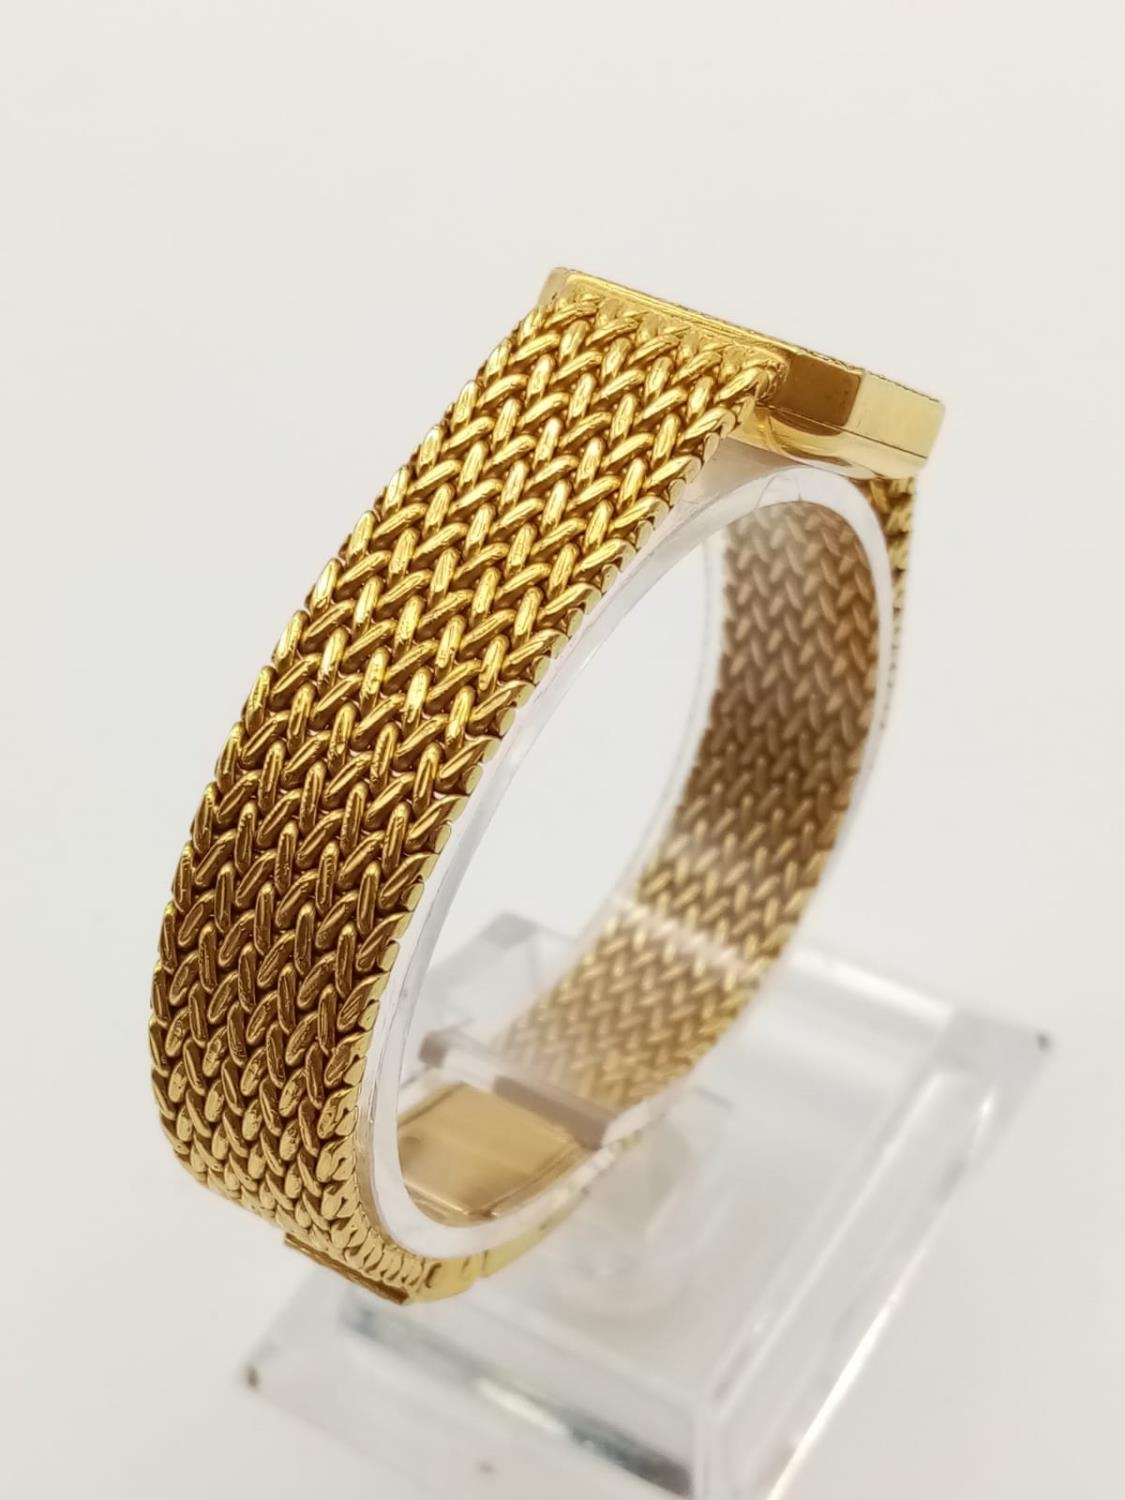 18K GOLD DRESS WATCH BY CHOPARD OF GENEVA WITH DIAMOND BEZEL AND SOLID GOLD STRAP. 20MM - Image 3 of 9